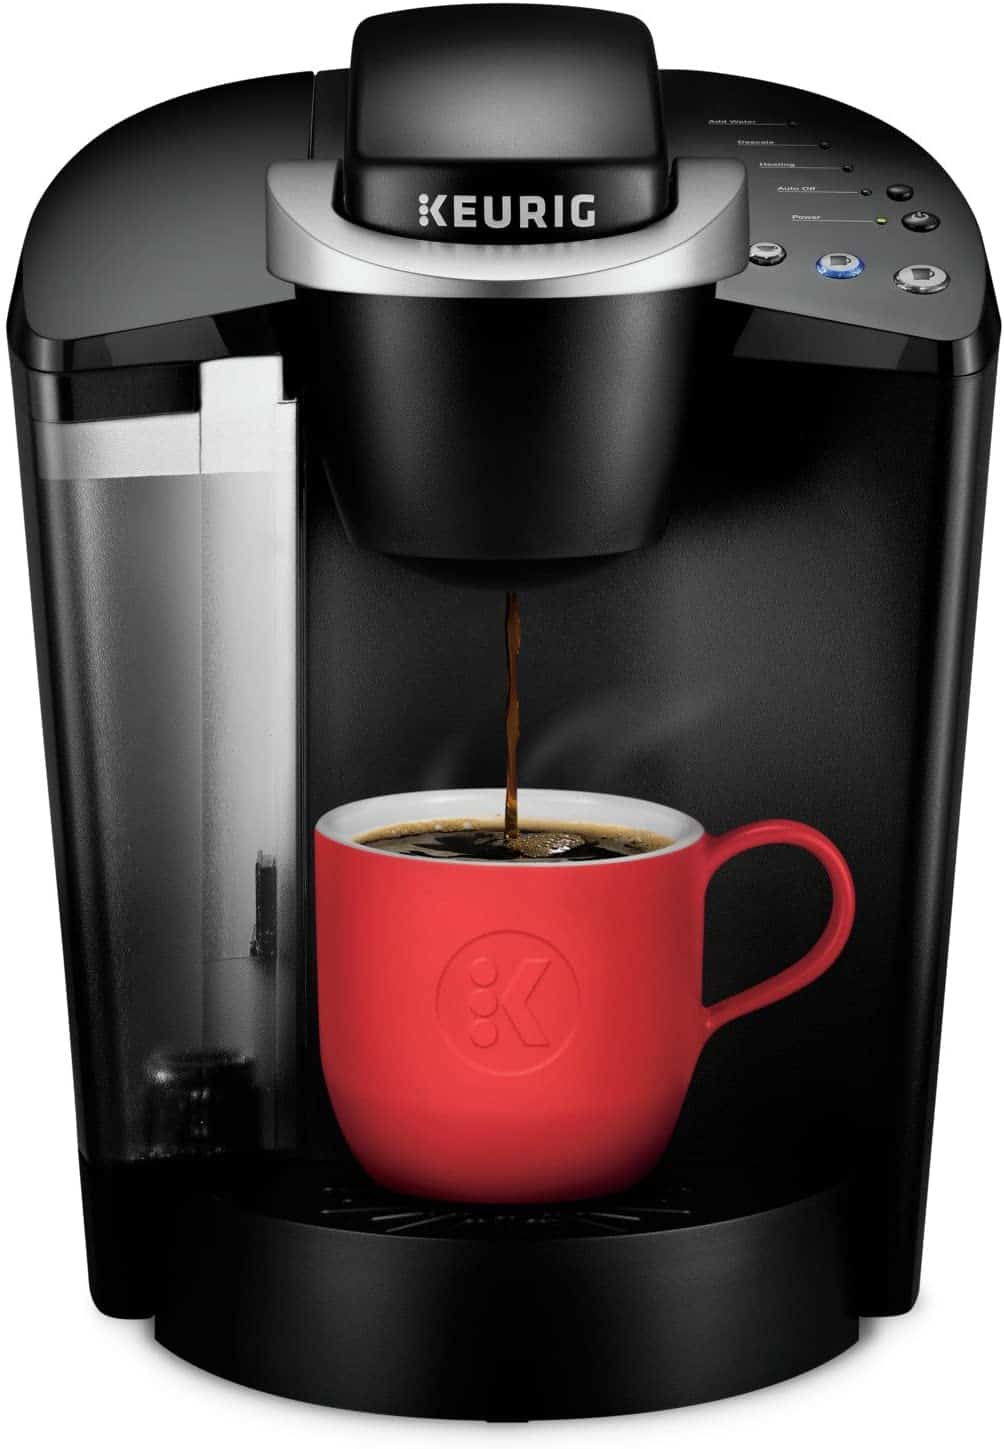 Keurig coffee maker with a red coffee cup.